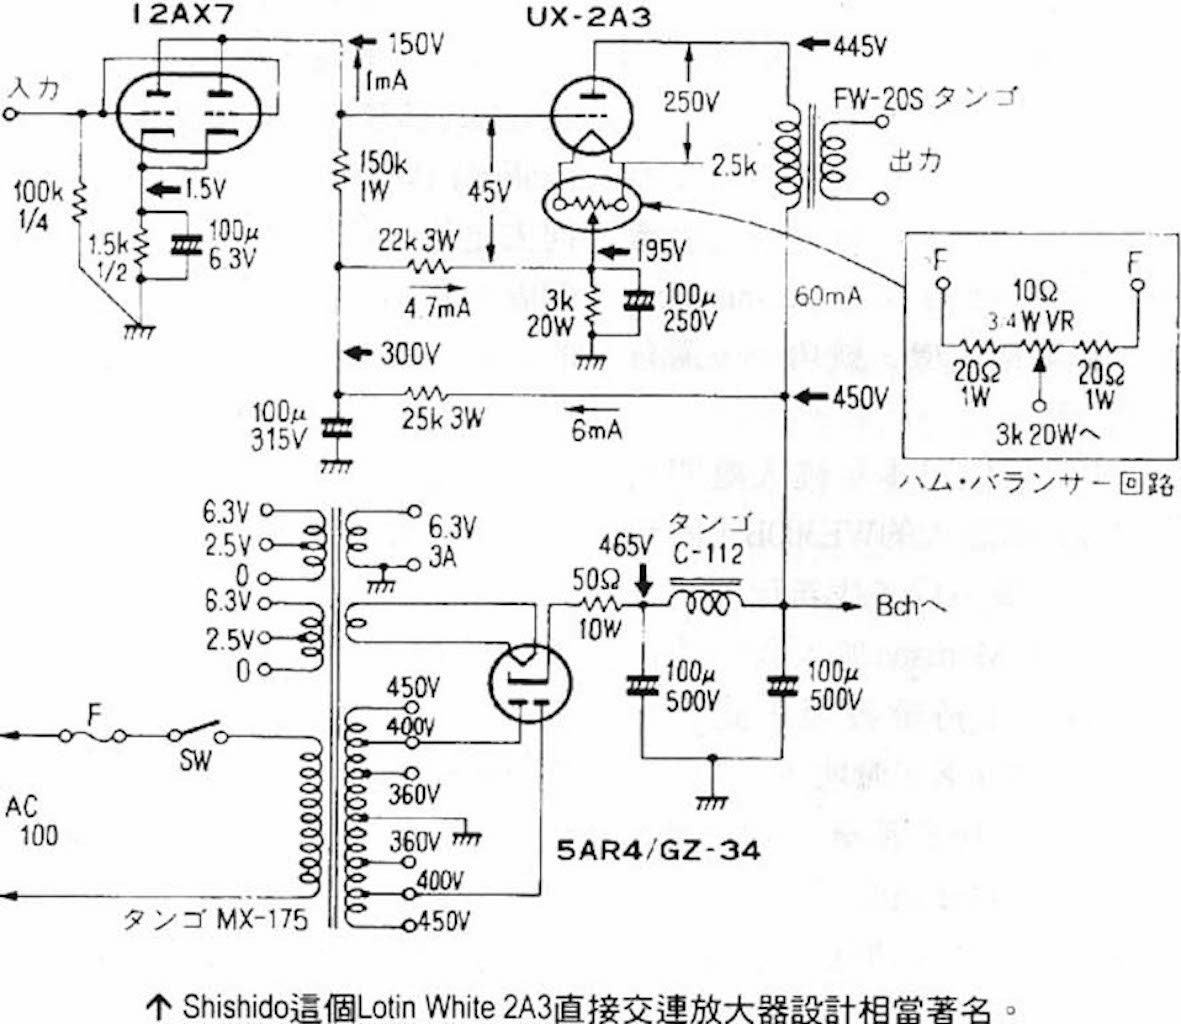 2A3 tube amp schematics